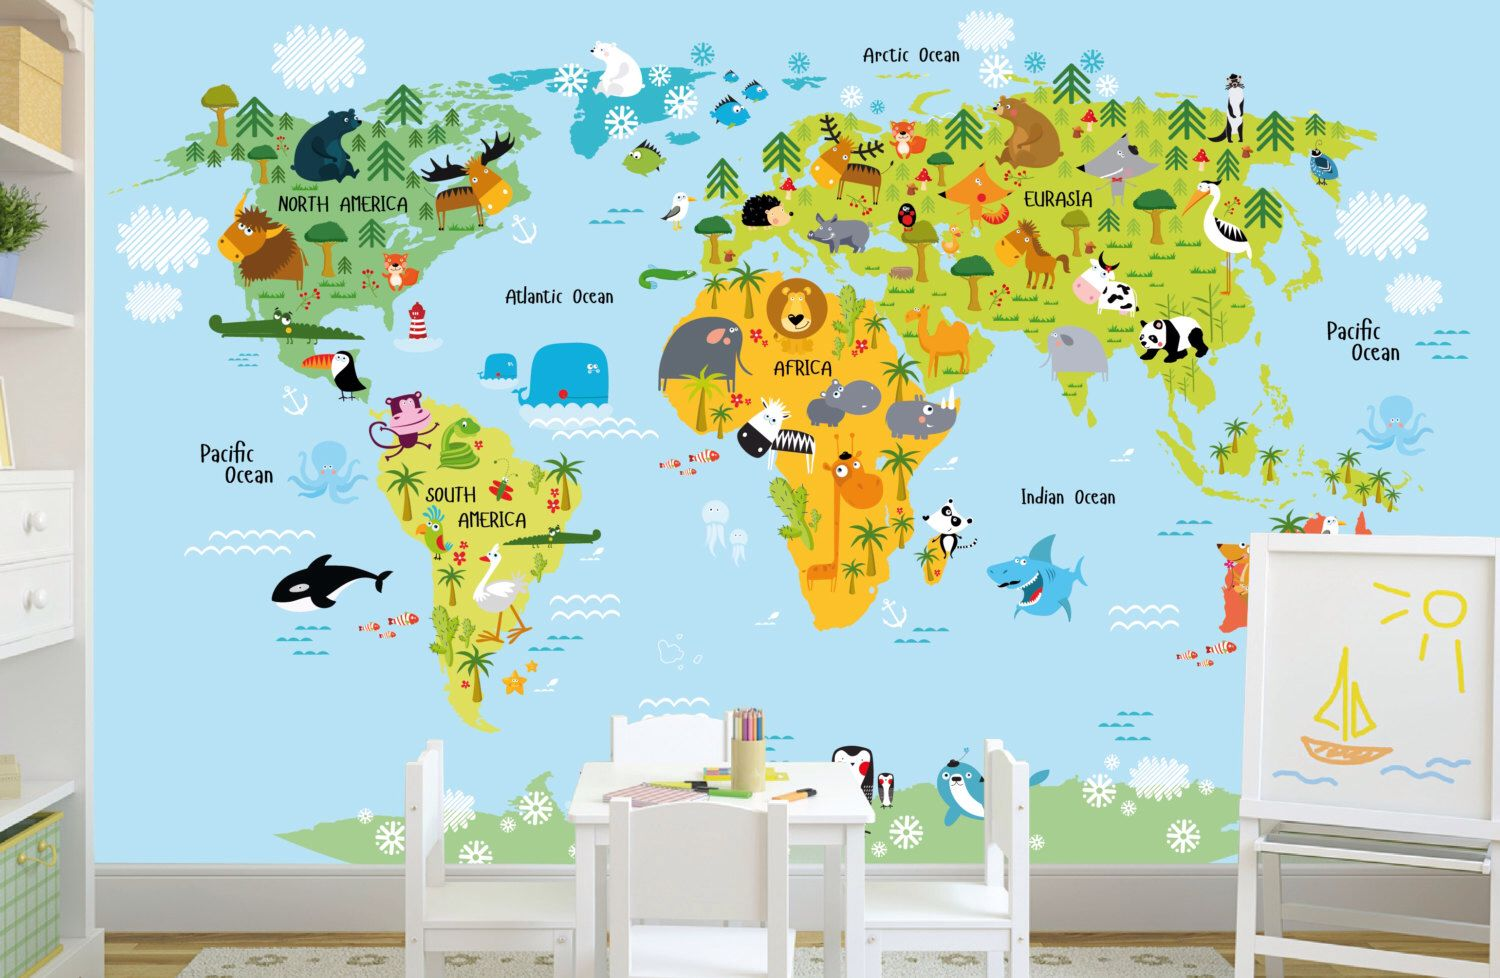 Self adhesive removable wallpaper map kids wall mural animals self adhesive removable wallpaper map kids wall mural animals world map wallpaper gumiabroncs Gallery